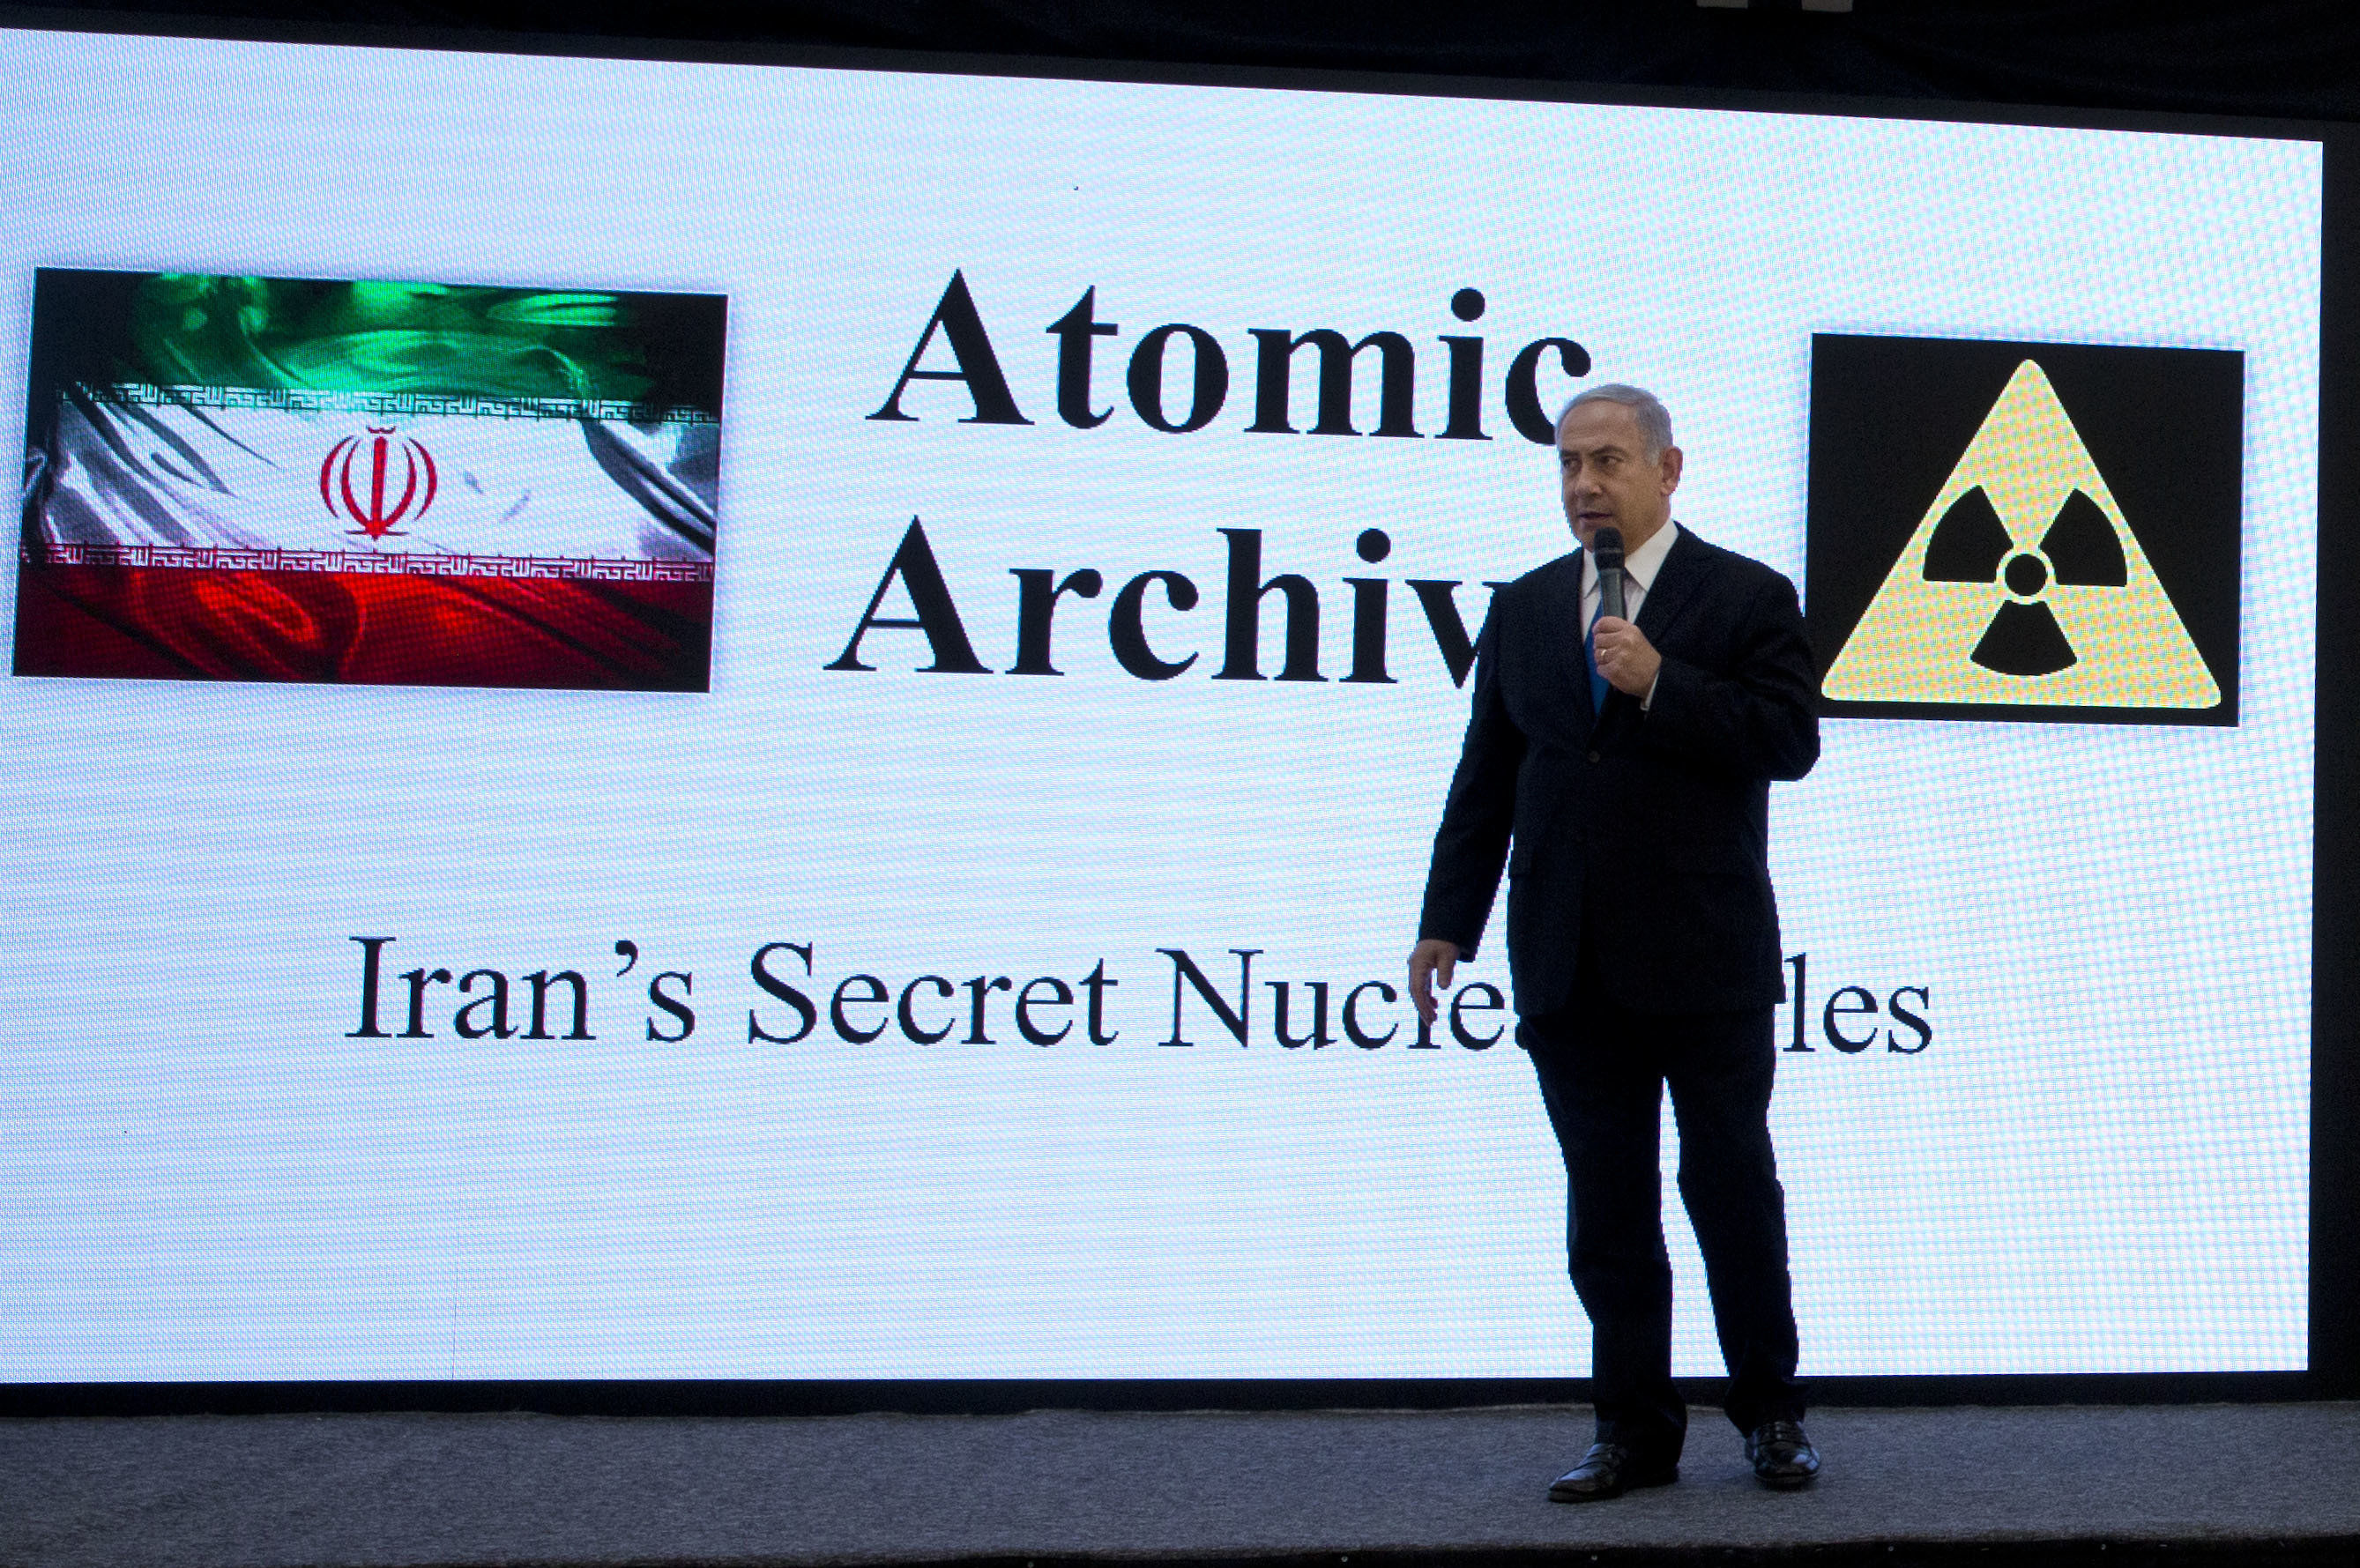 Israeli Prime Minister Benjamin Netanyahu presents material on Iran's purported nuclear program in Tel Aviv